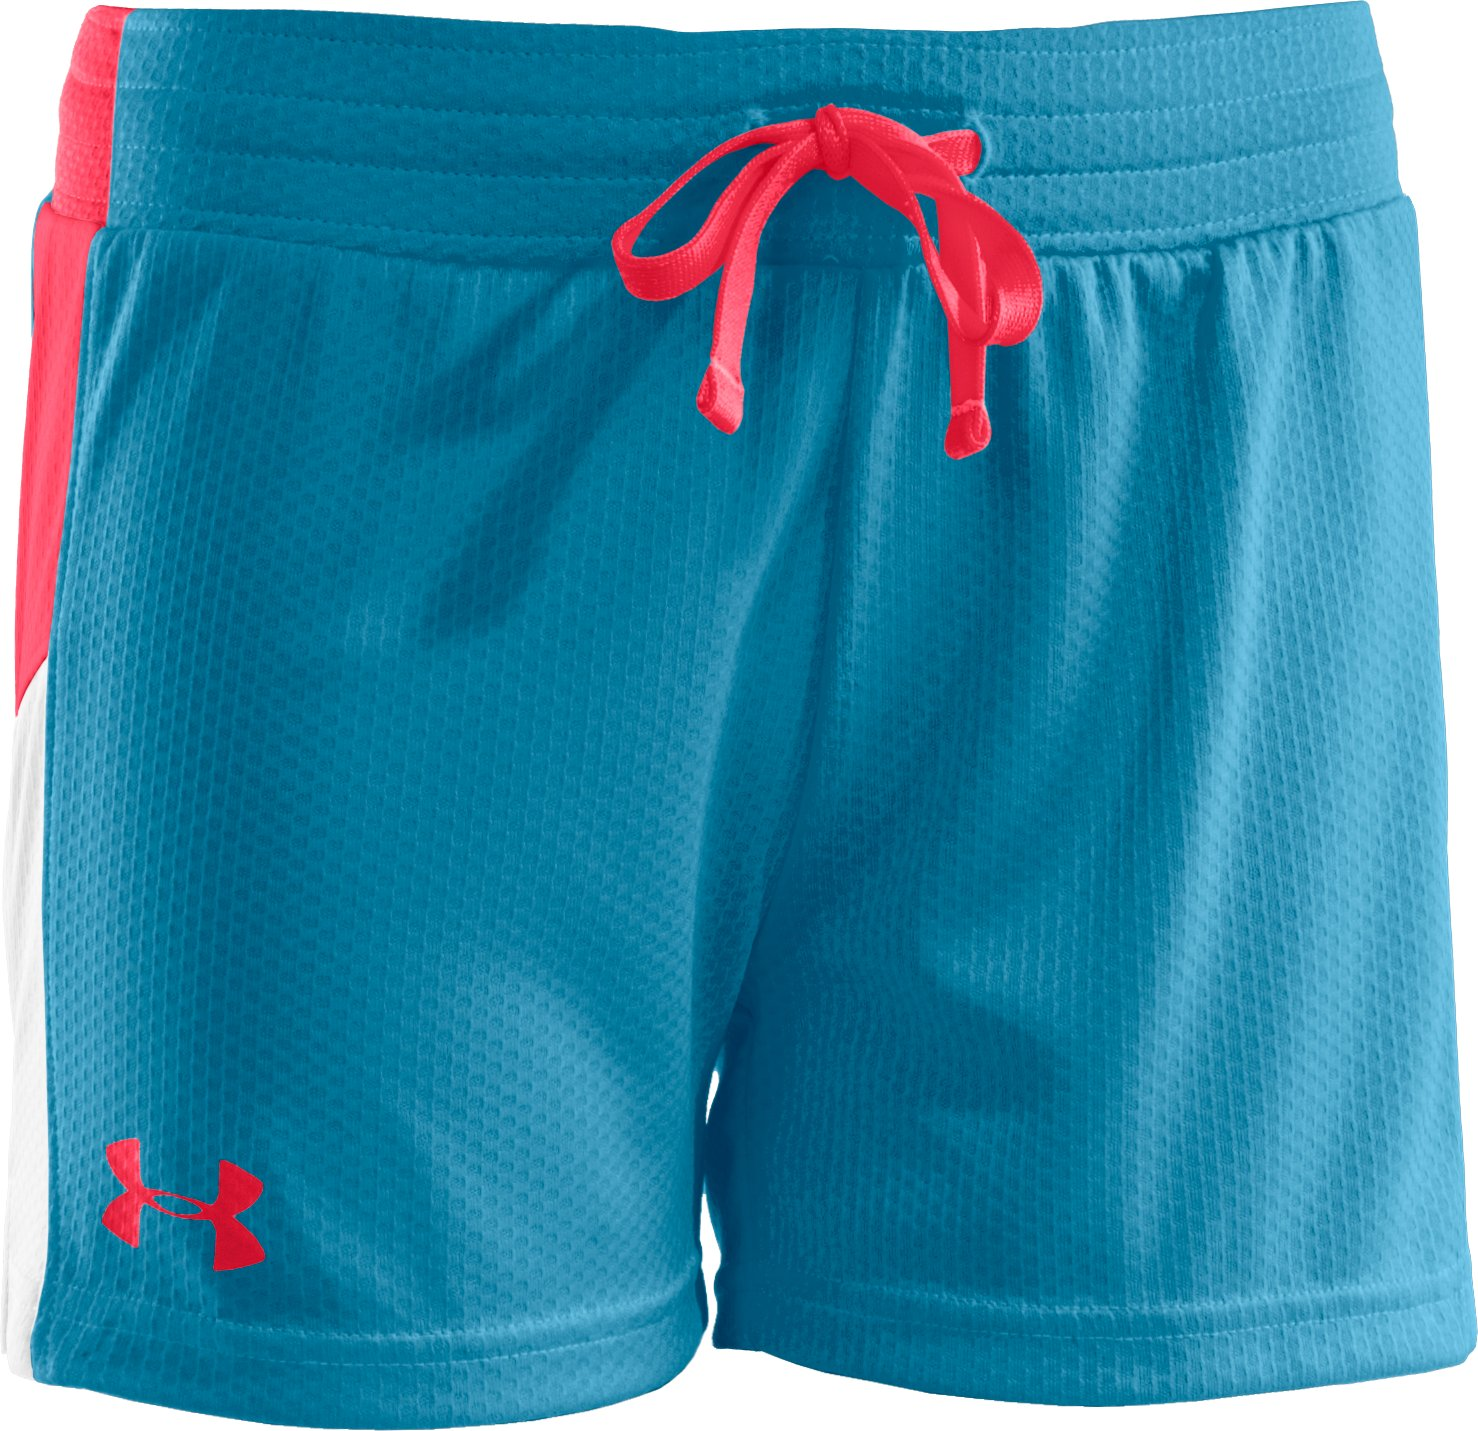 "Girls' UA Intensity 3"" Shorts, Deceit, zoomed image"